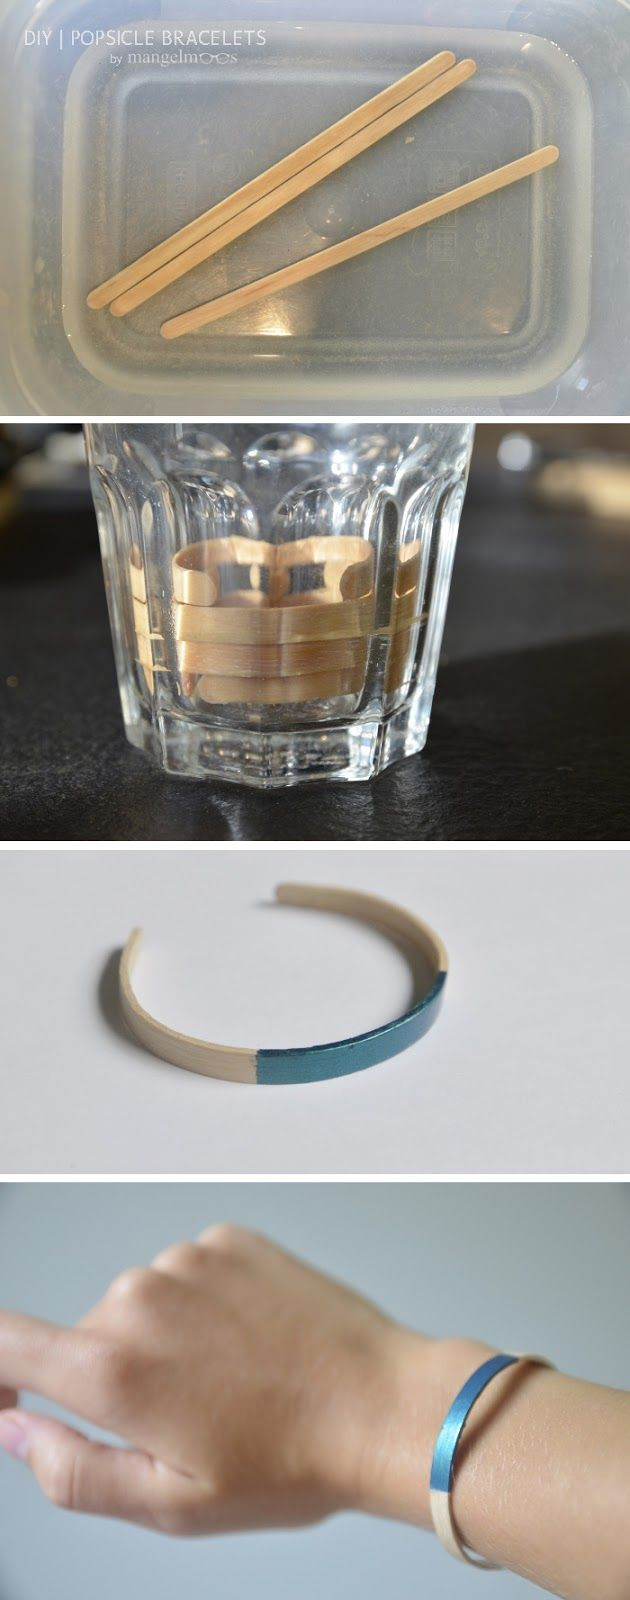 DIY | popsicle bracelets - maybe paint in metallic gold or silver, or even glitter. but then it should be sealed, with glue??